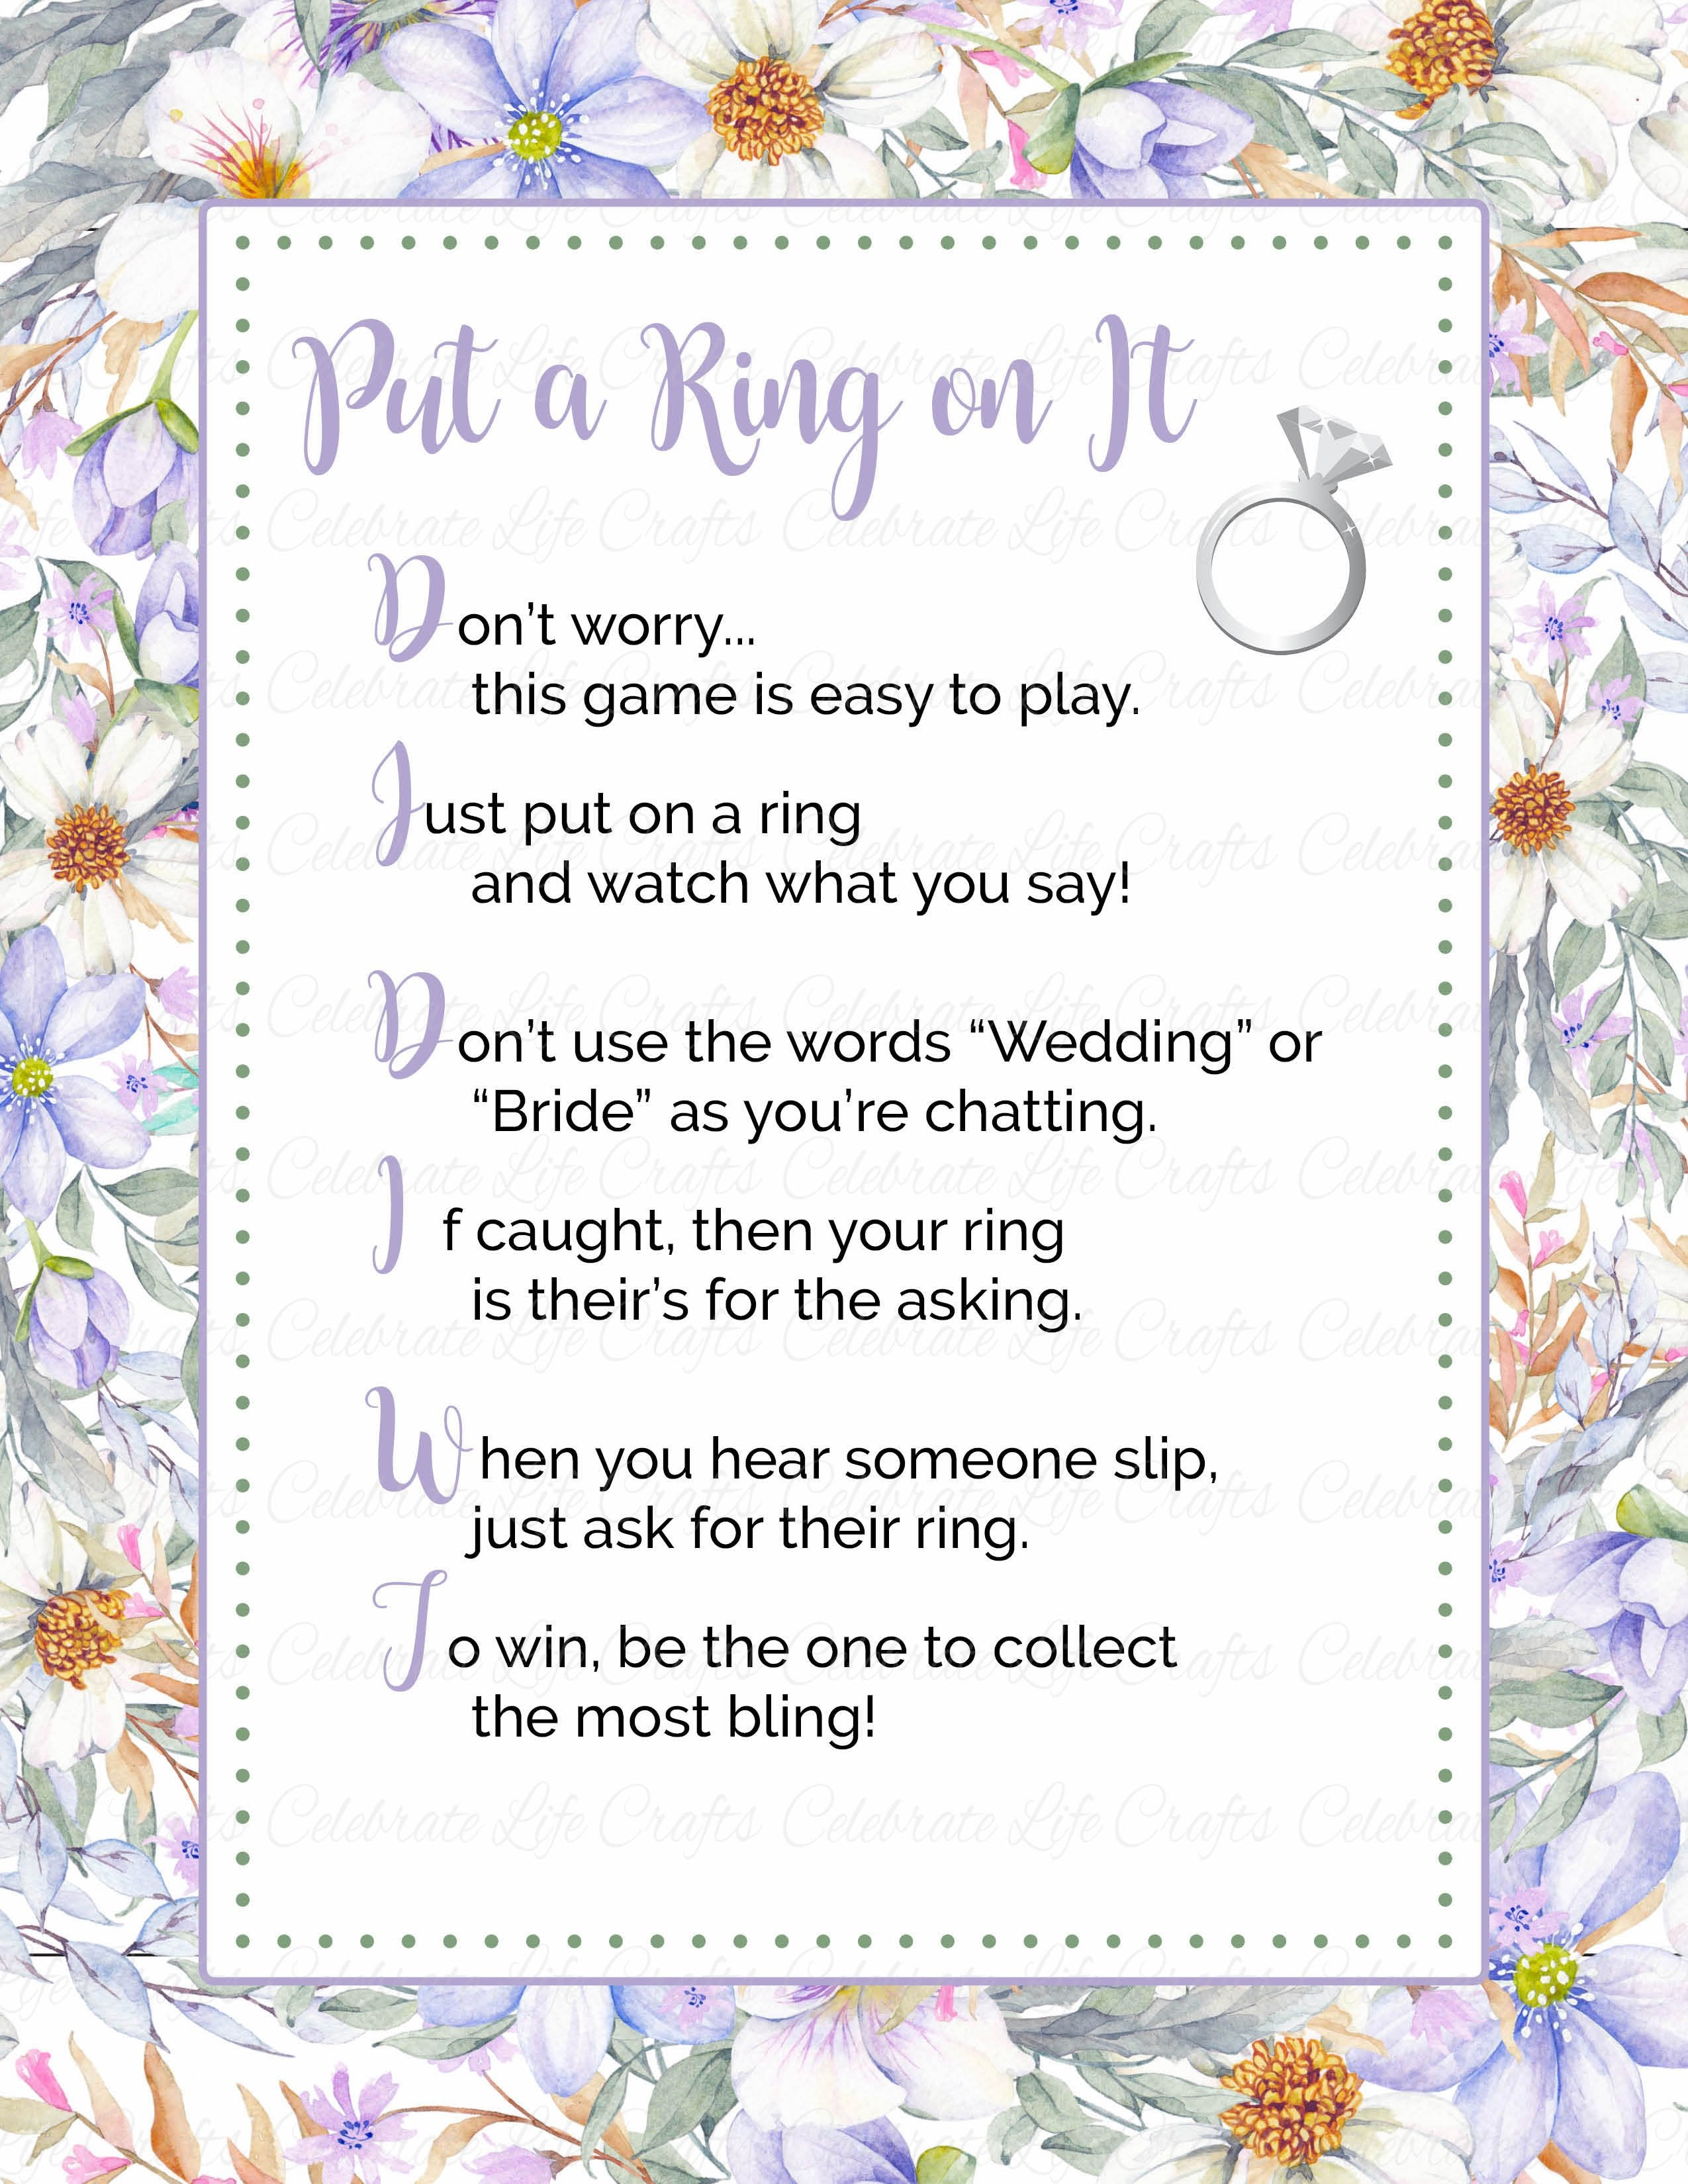 Remarkable image inside put a ring on it bridal shower game free printable